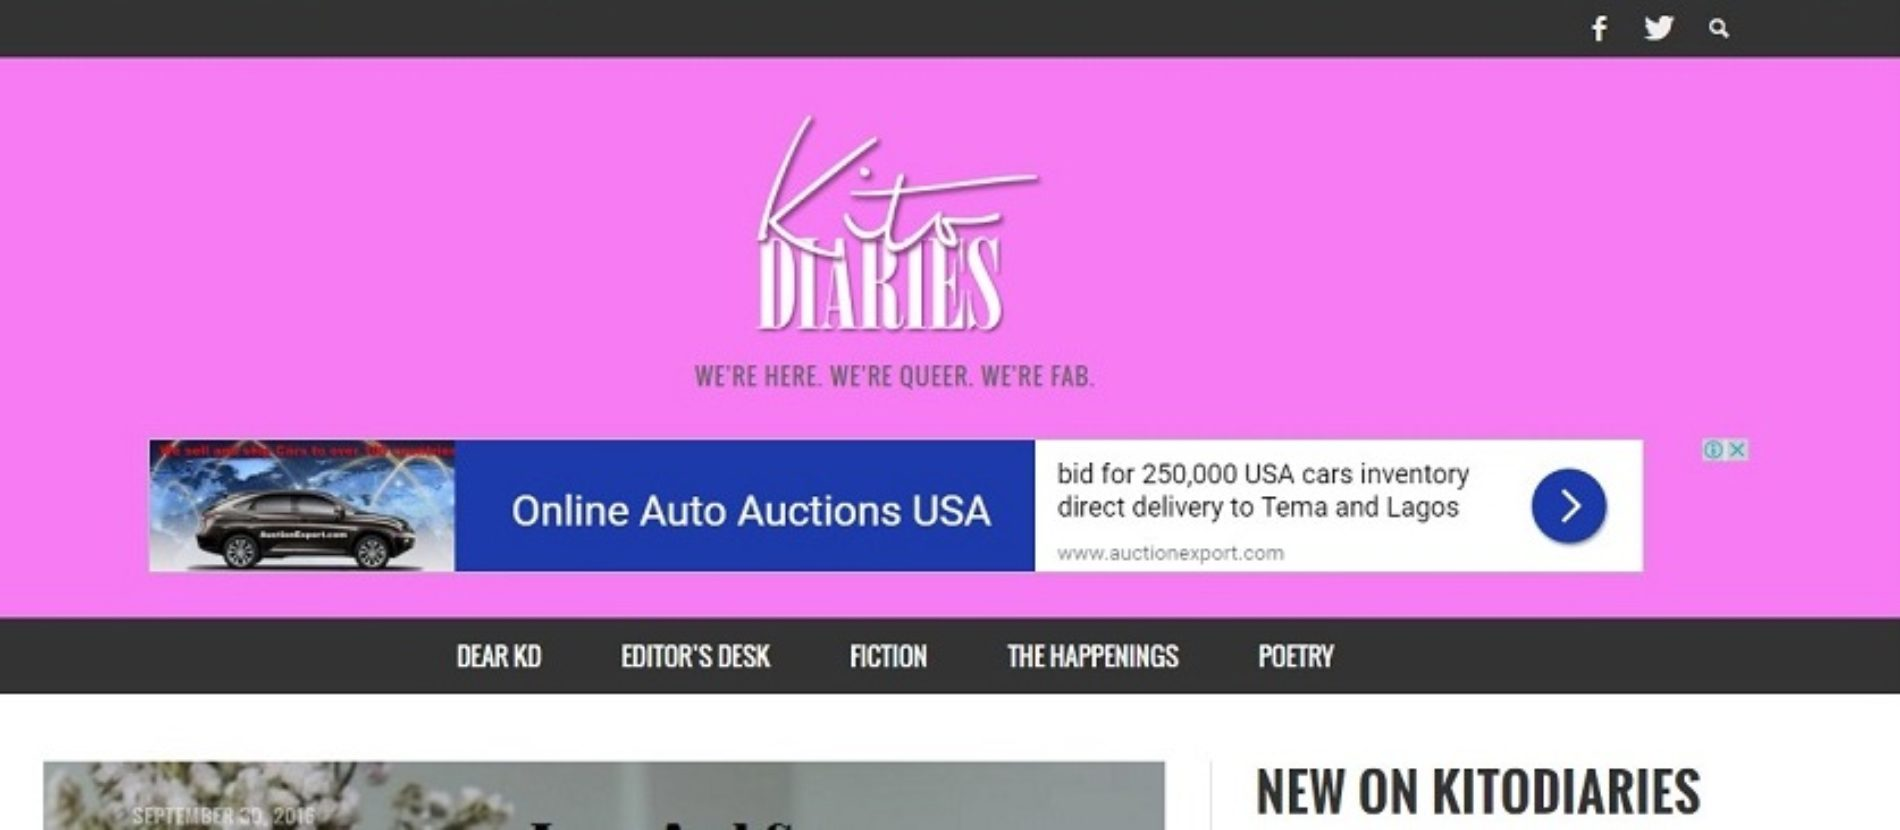 THE OUTREACH THAT IS KITO DIARIES